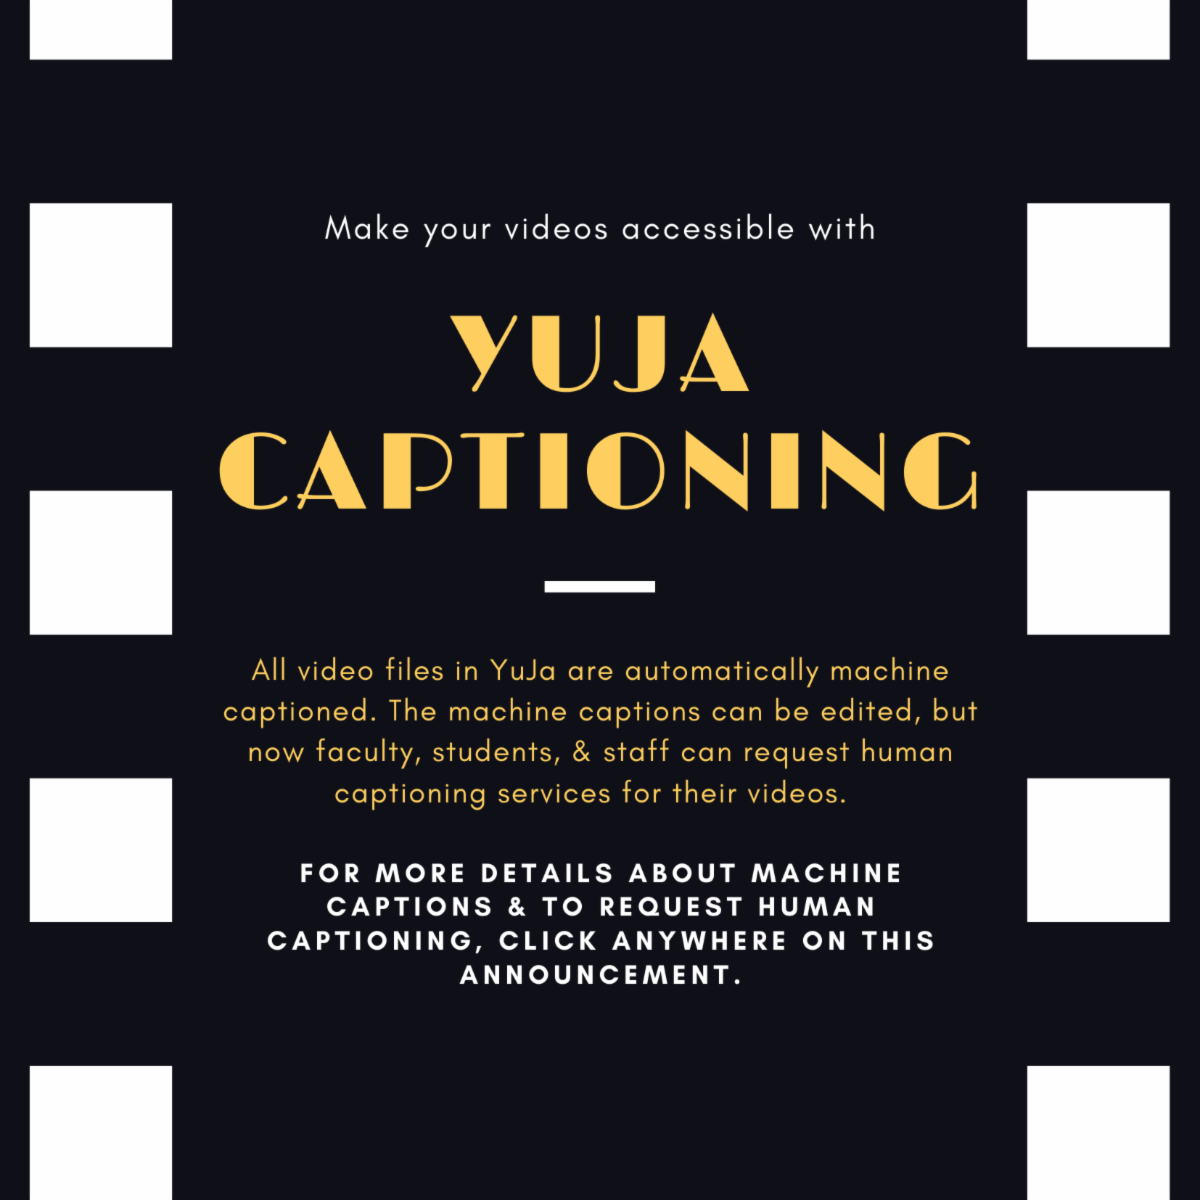 YuJa captioning All video files in YuJa are automatically machine captioned but faculty students and staff can request human captioning services for their videos